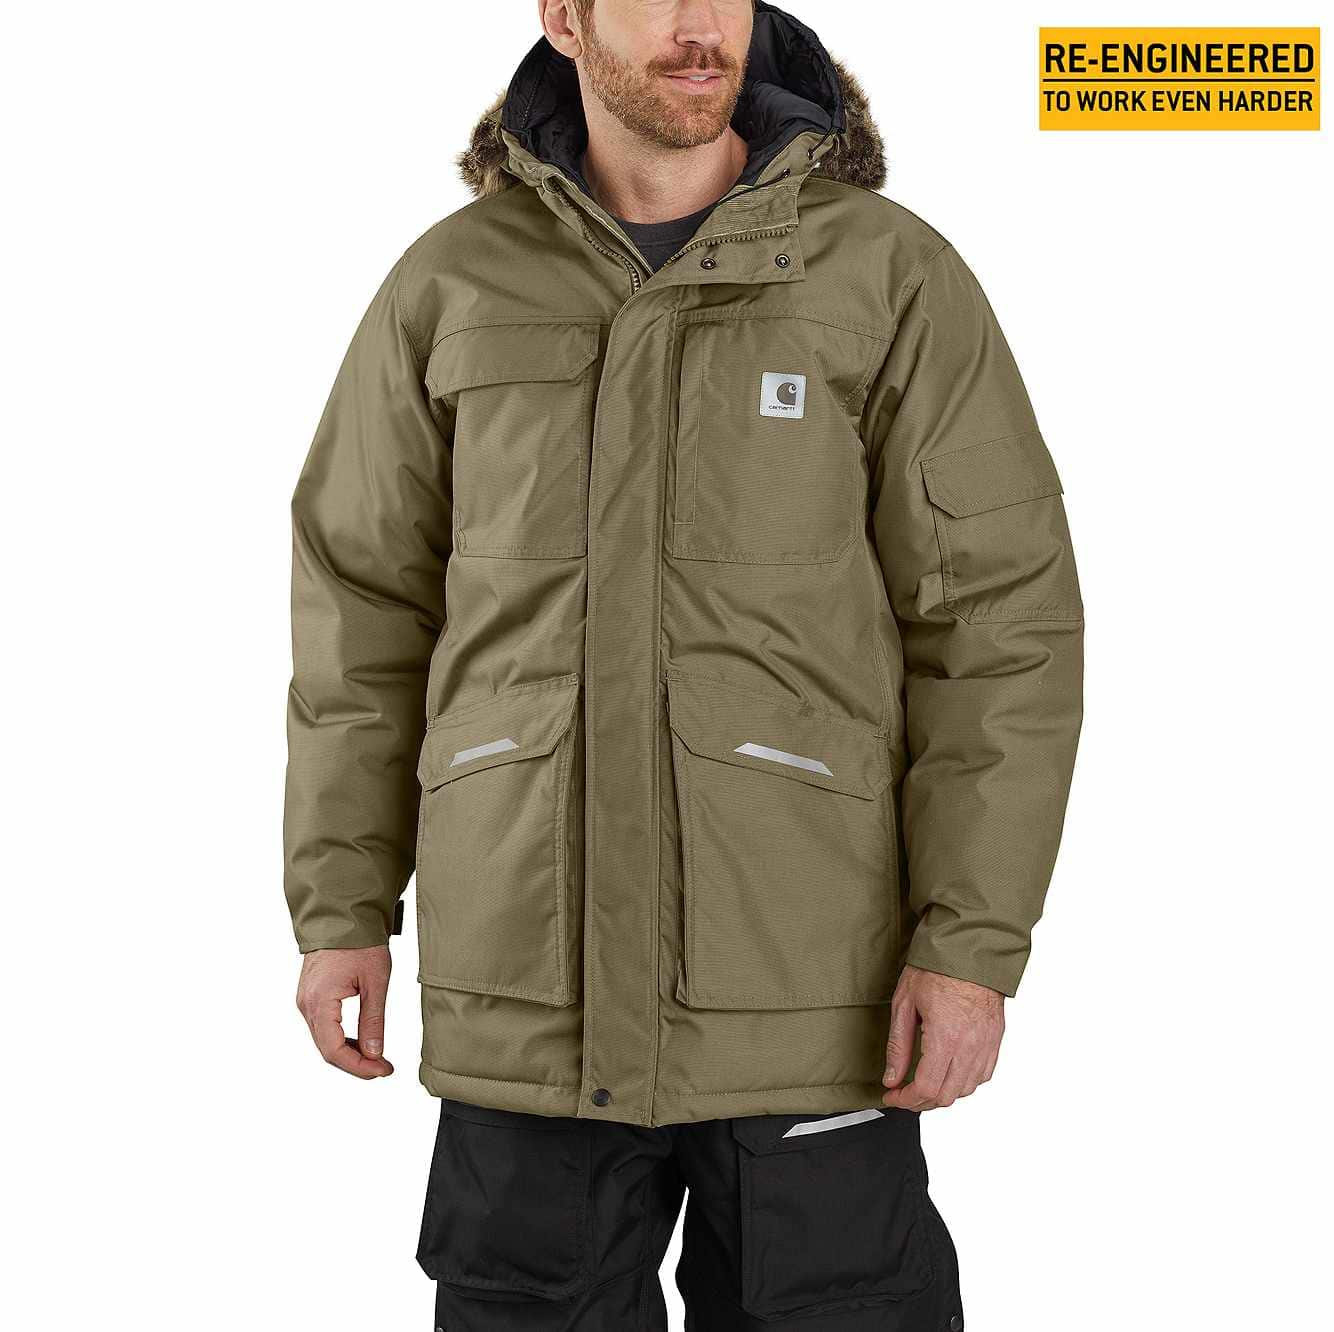 Picture of Carhartt® Yukon Extremes® Insulated Parka in Burnt Olive